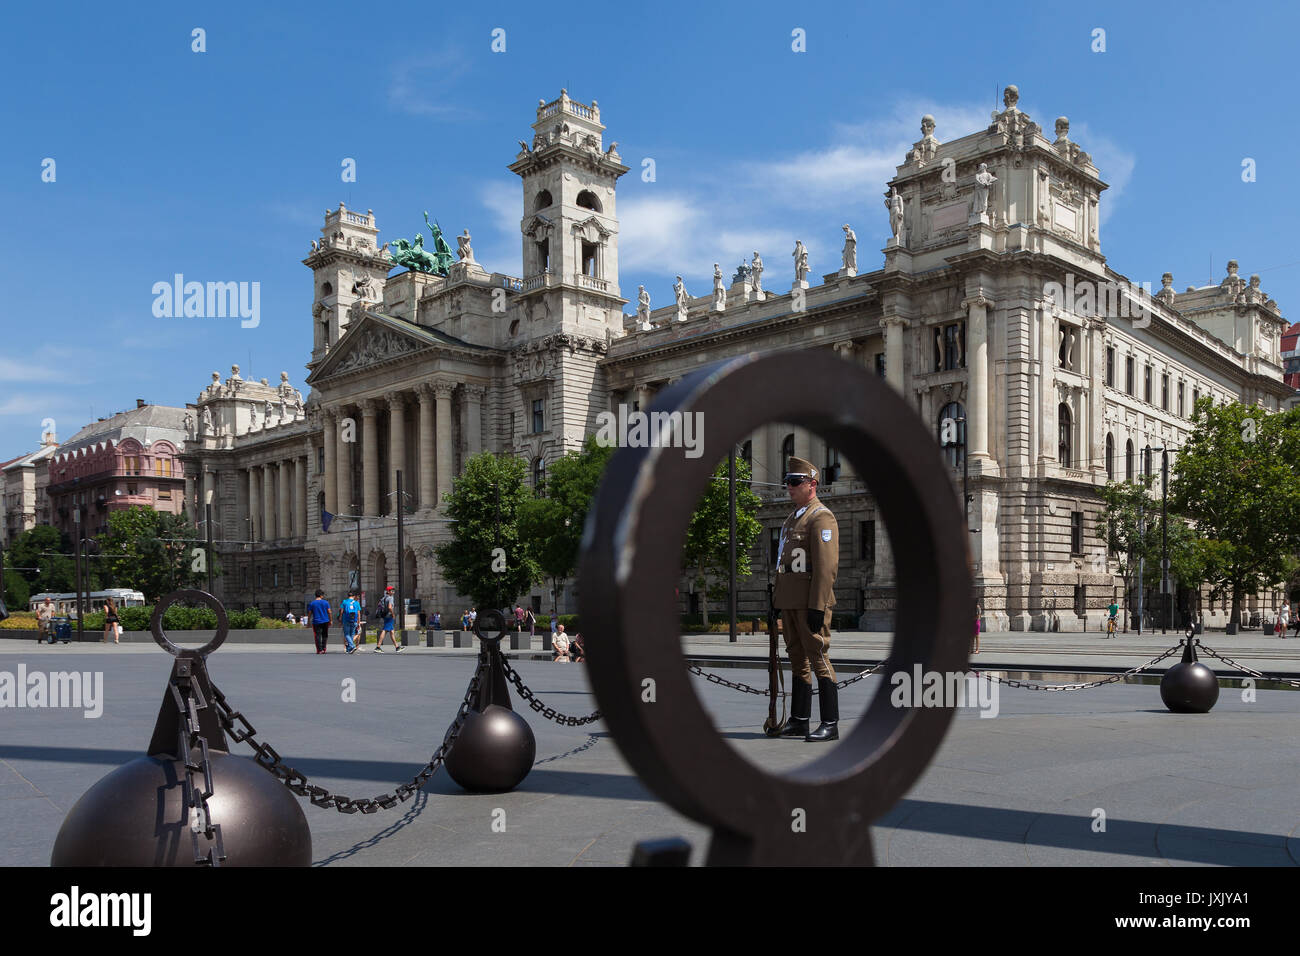 Ministry of Agriculture building, Museum of Ethnography, behind Parliament building, Budapest Hungary shot from - Stock Image